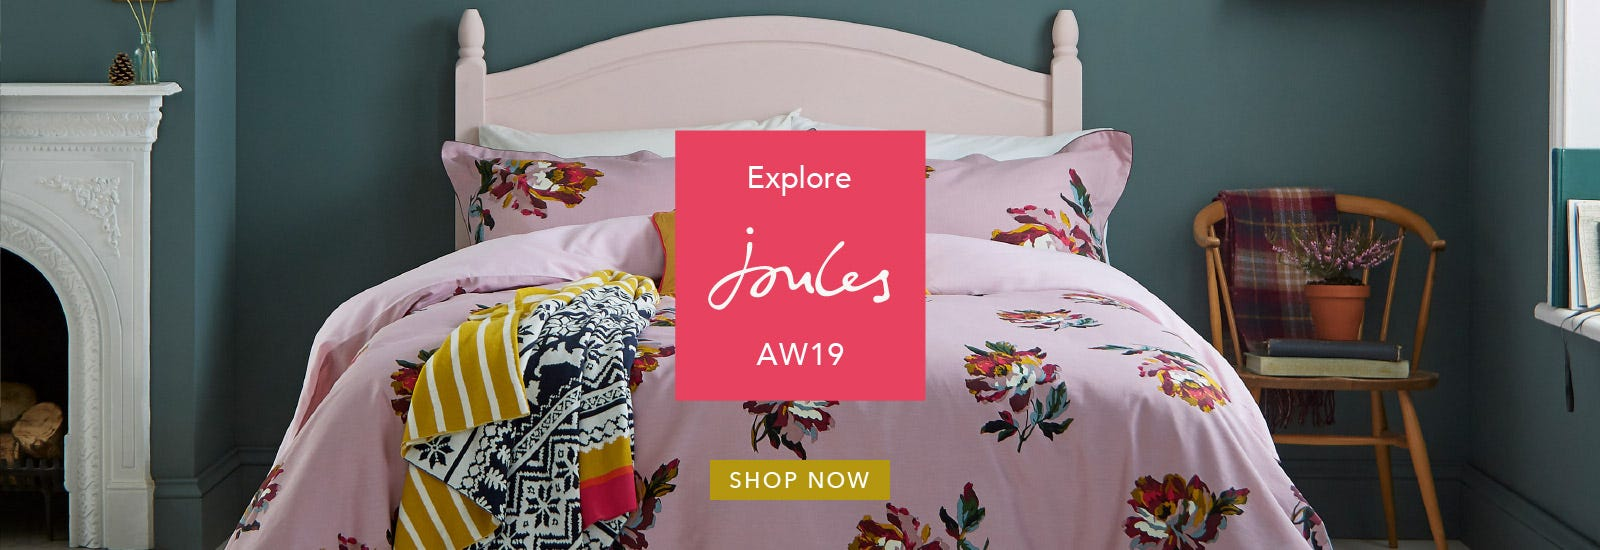 New Joules Autumn Winter 2019 Collection